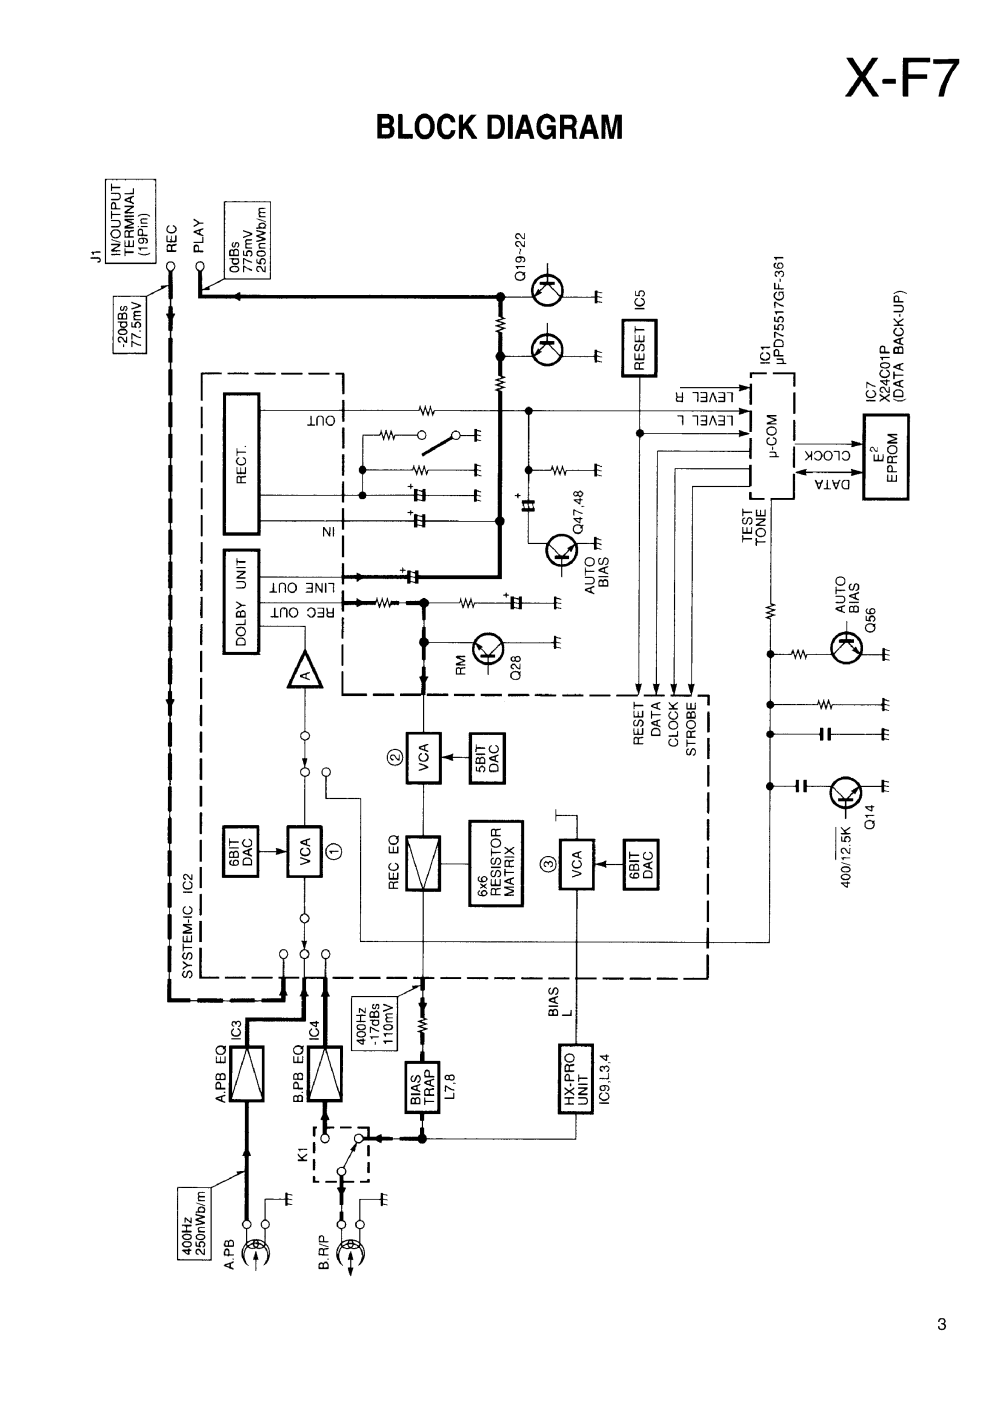 medium resolution of tags western unimount wiring harness western plow solenoid wiring diagram western unimount plow wiring diagram 1994 western plow controller wiring